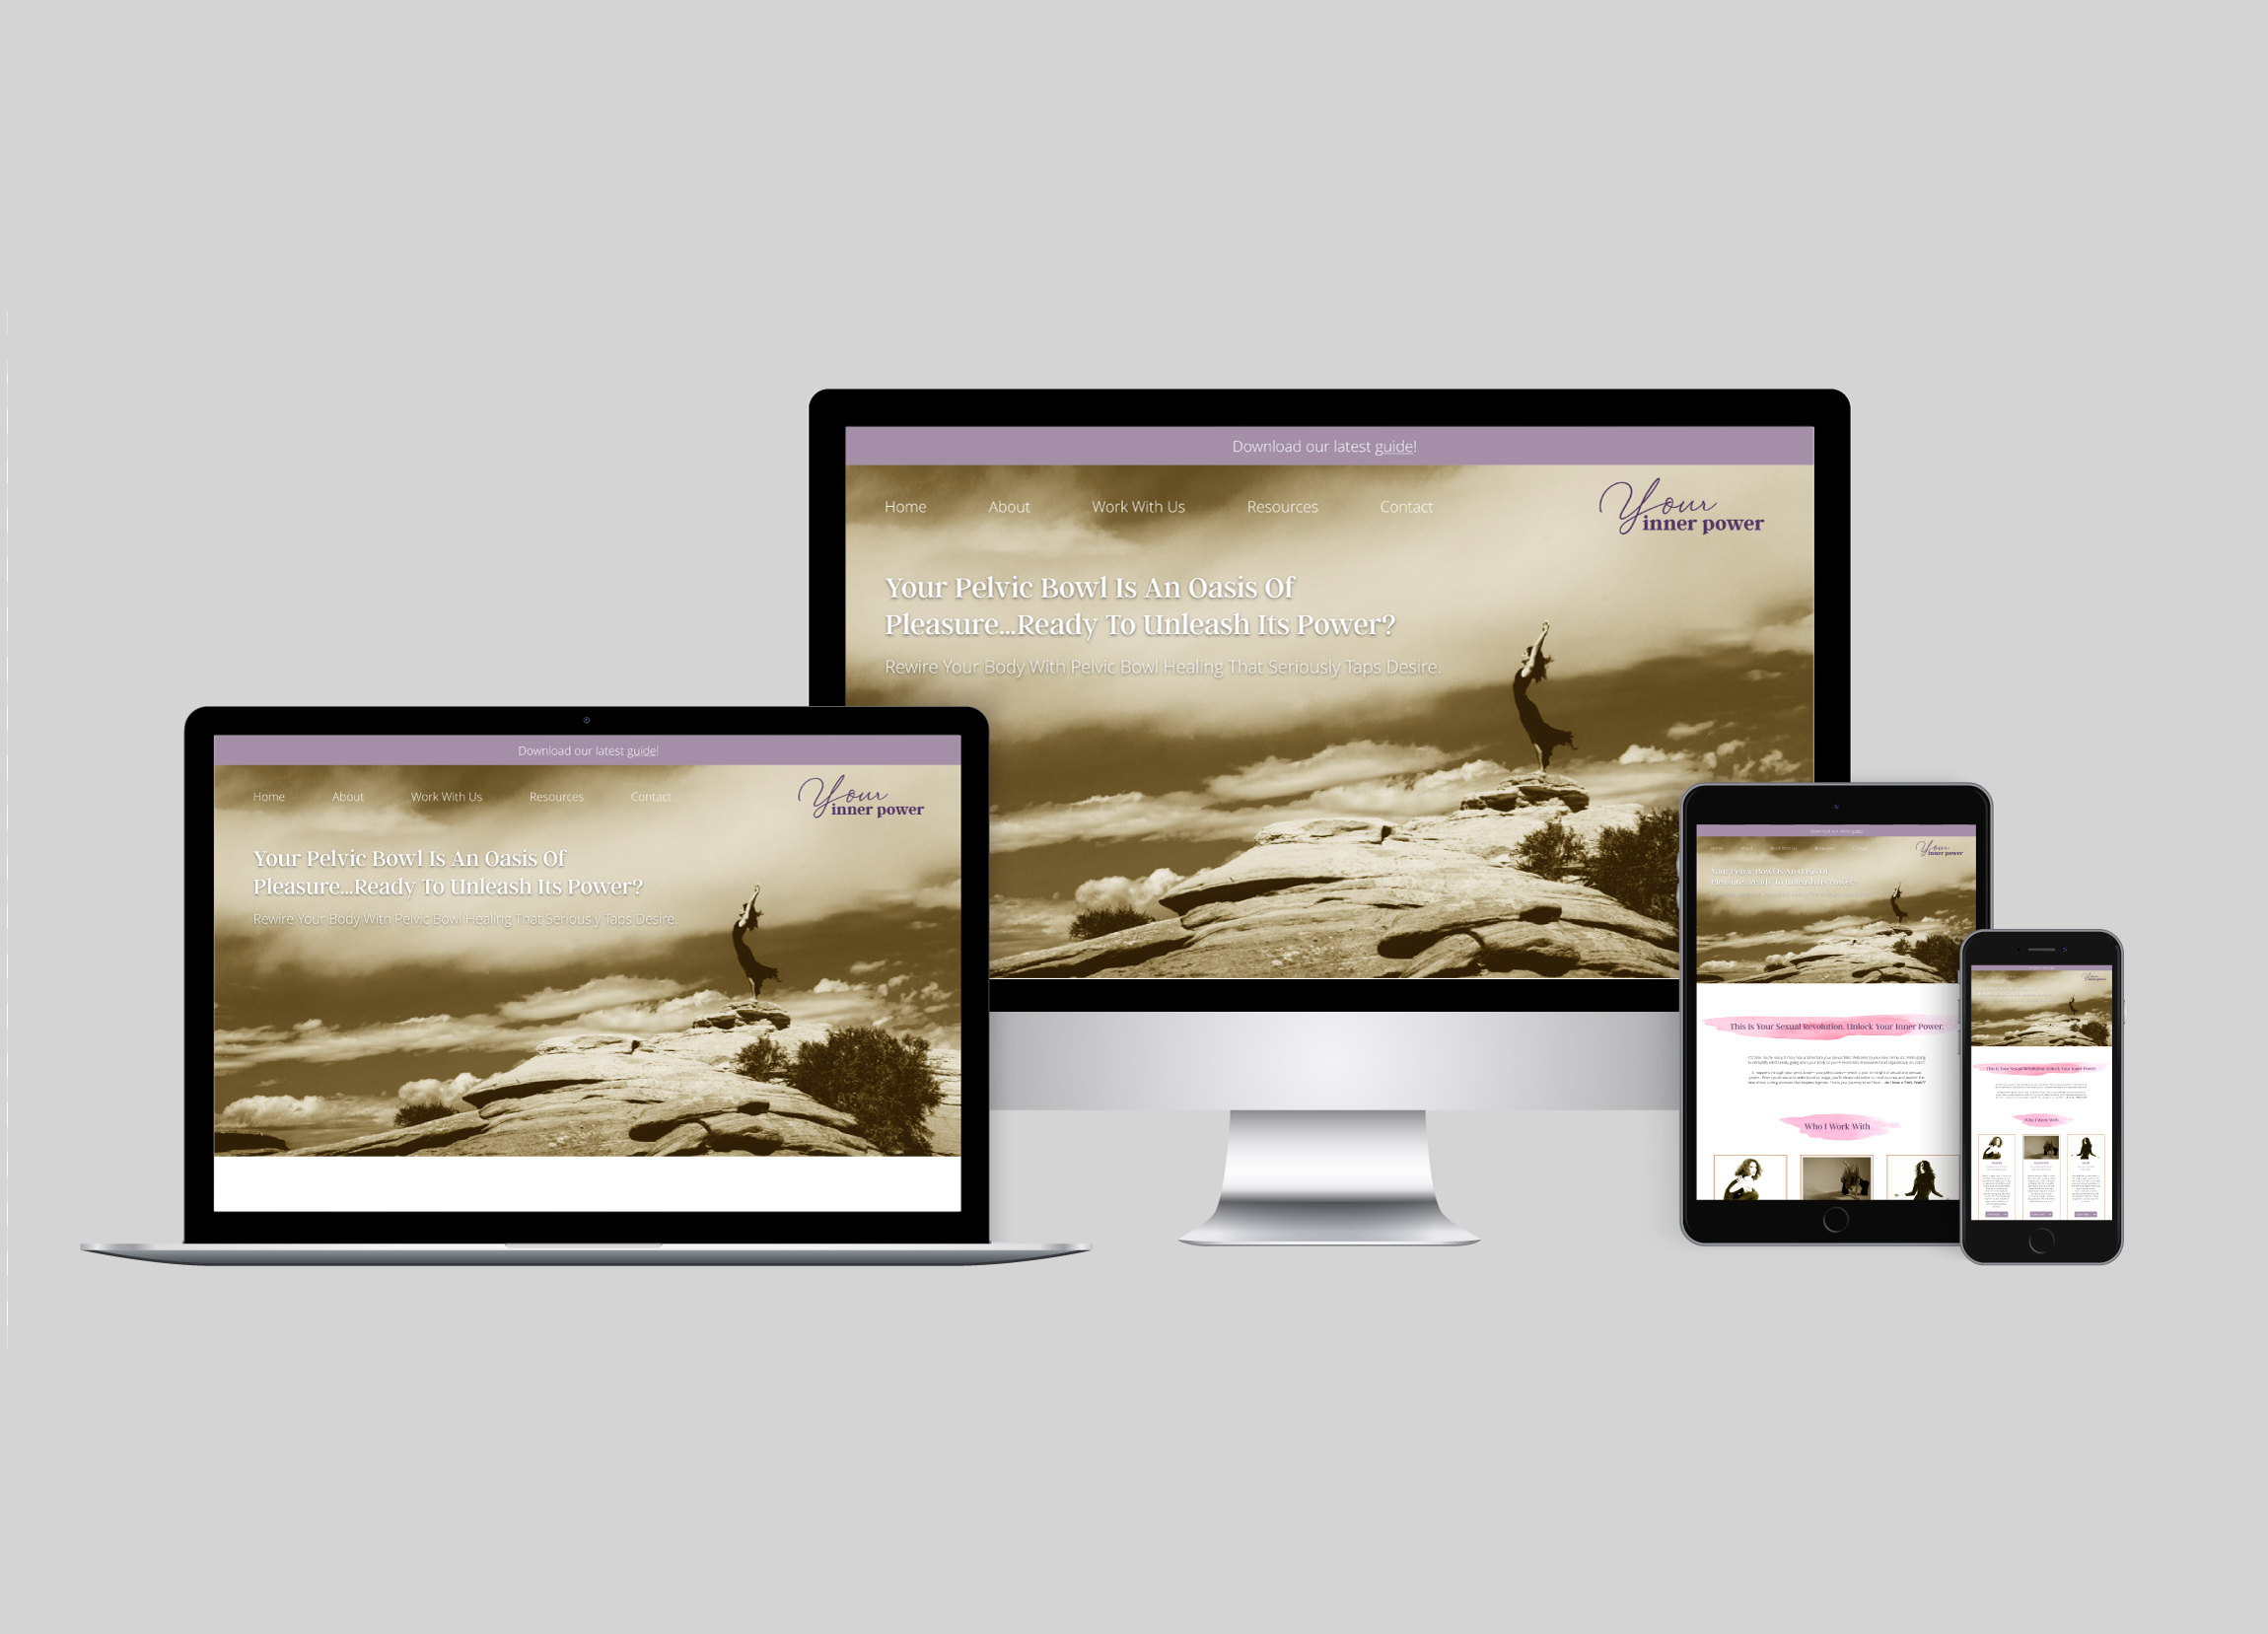 Alicia Patterson Case Study - As a part of the Business Bravery agency, I did the front end design for AliciaPatterson's website.